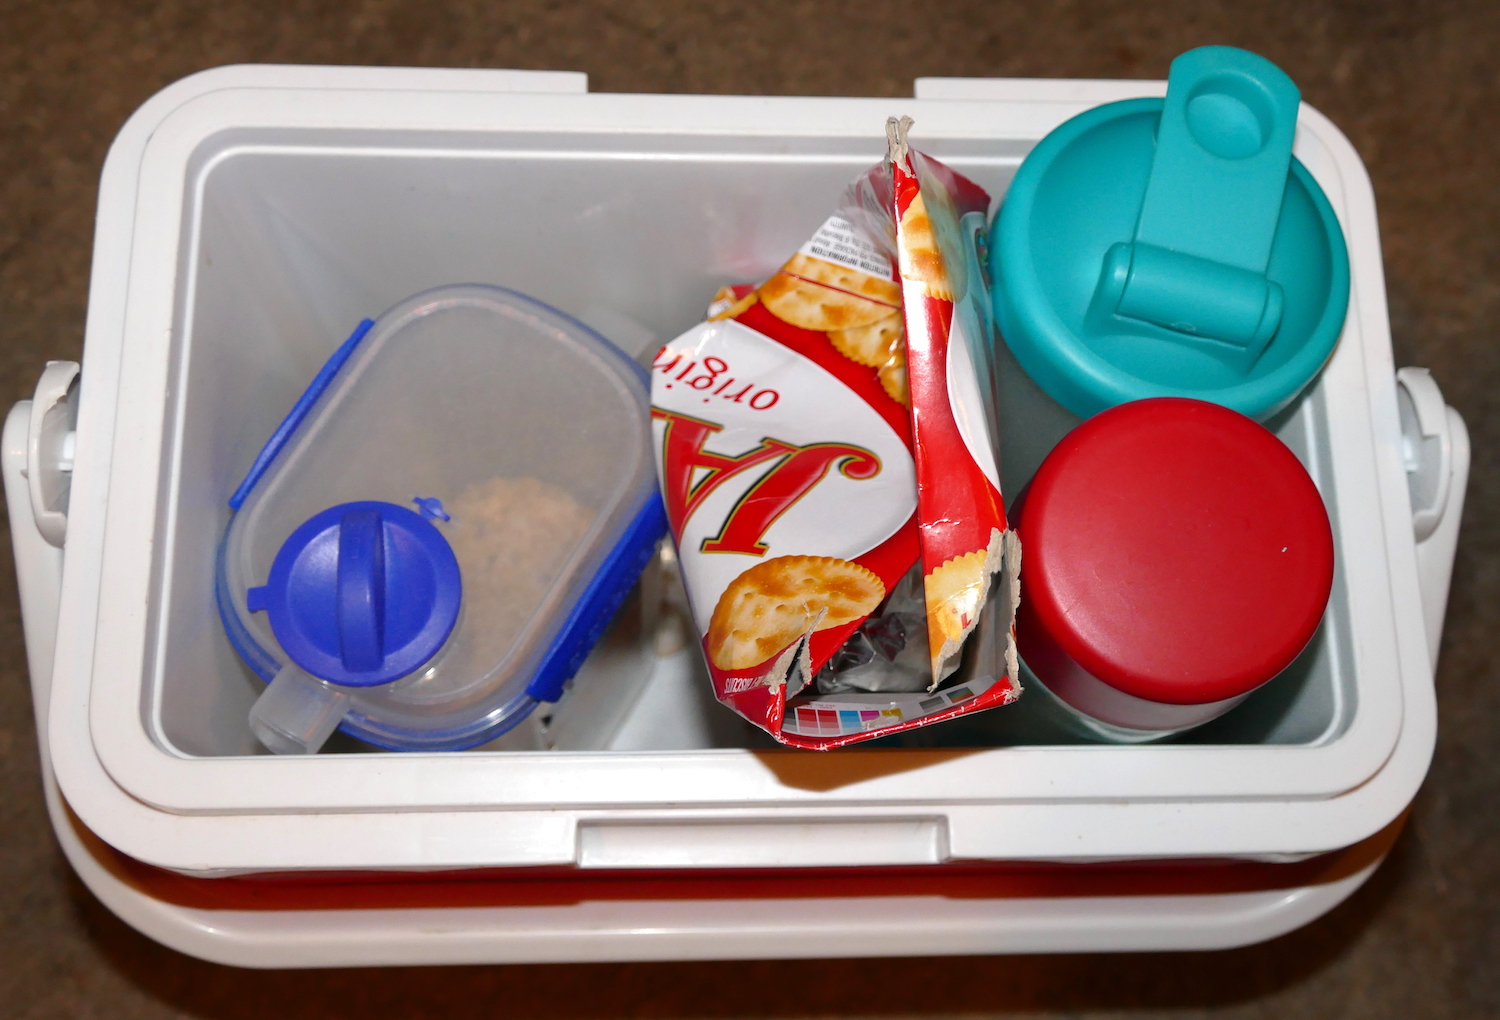 the esky contains hot water, jatz biscuits, cereal, empty shaker bottle